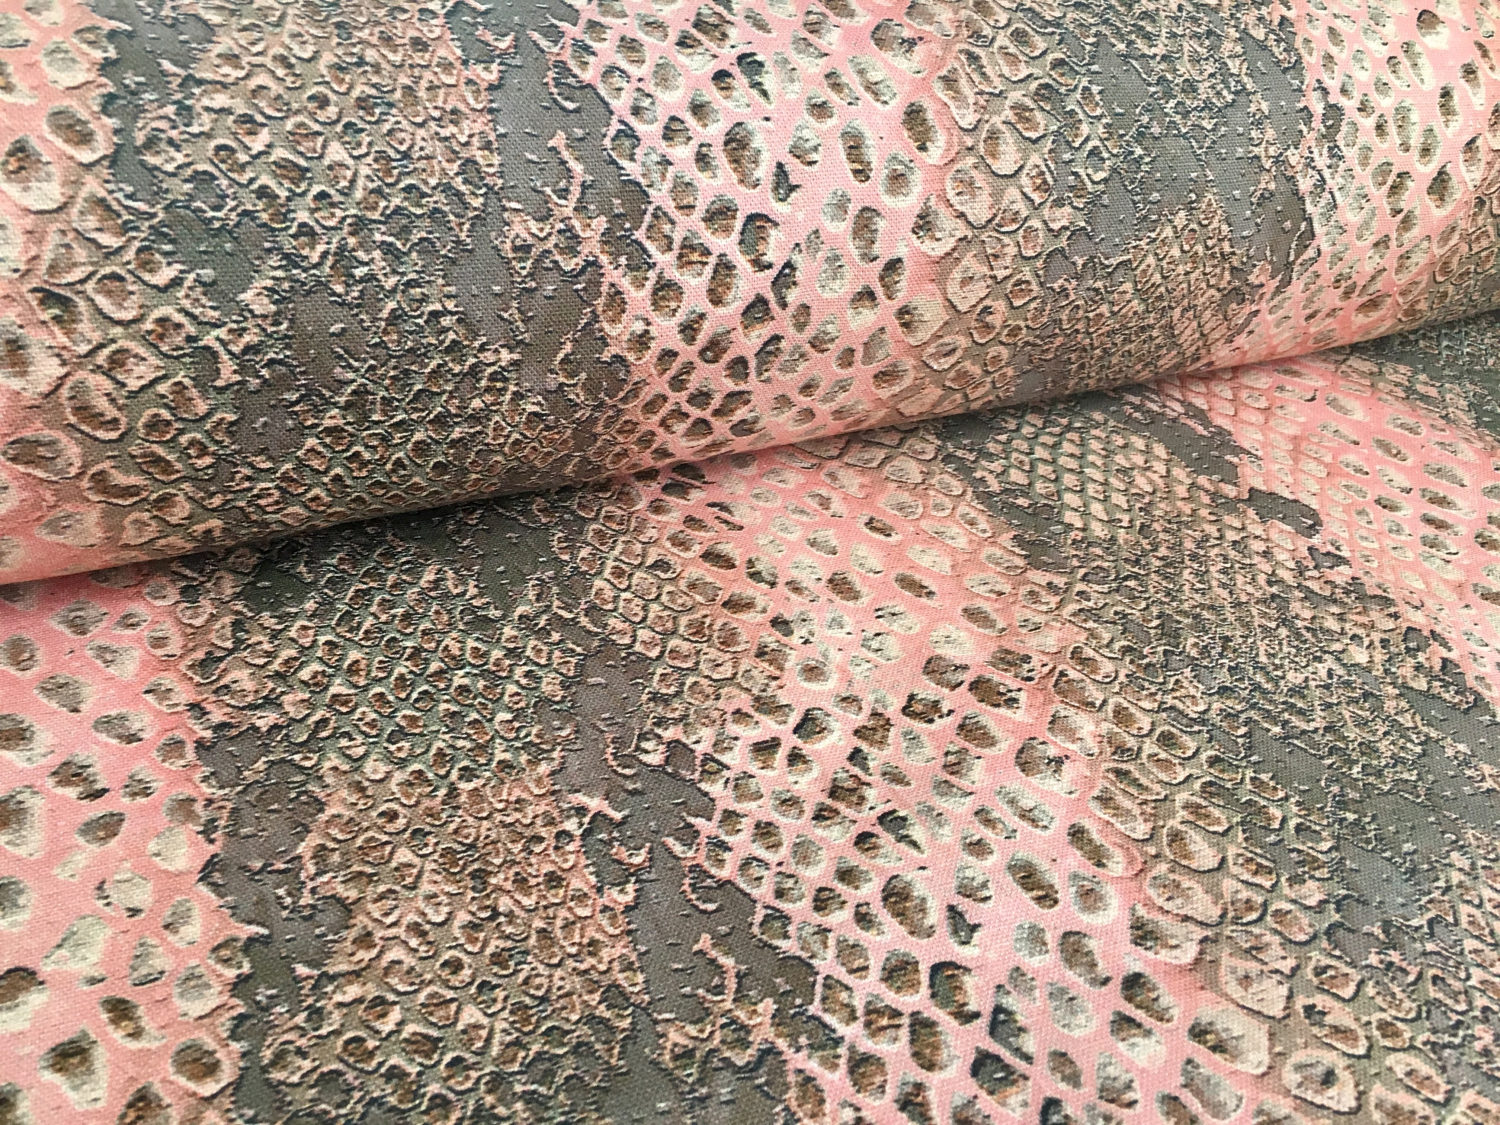 coral-snake-skin-digital-curtain-upholstery-fabric-animal-material-160cm-wide-594bea171.jpg